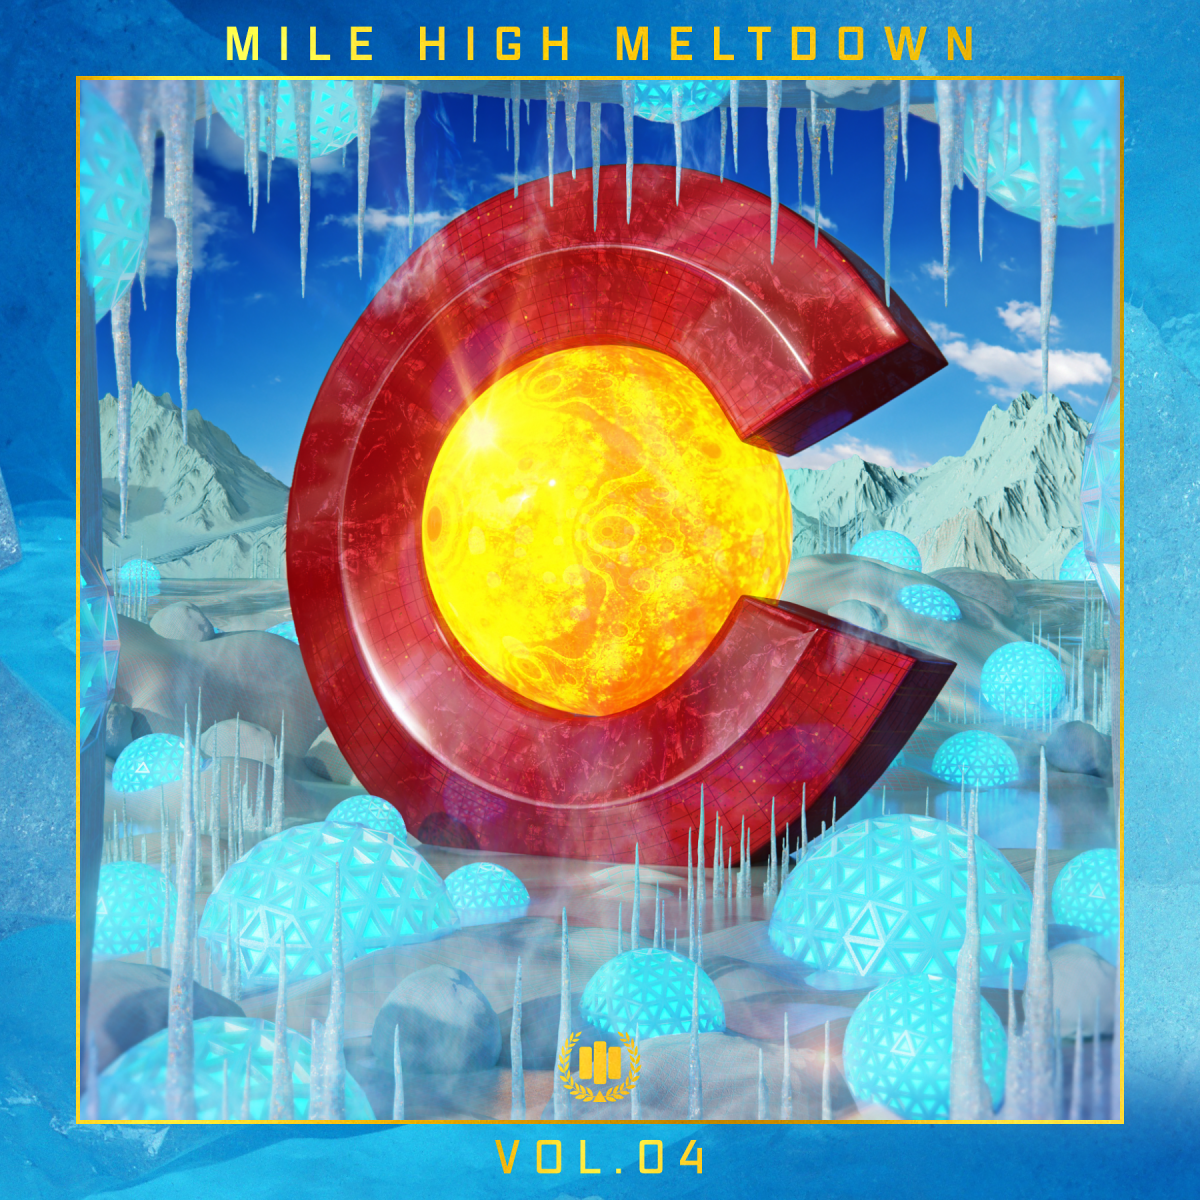 Mile High Meltdown Compilation vol.4 – Now Available